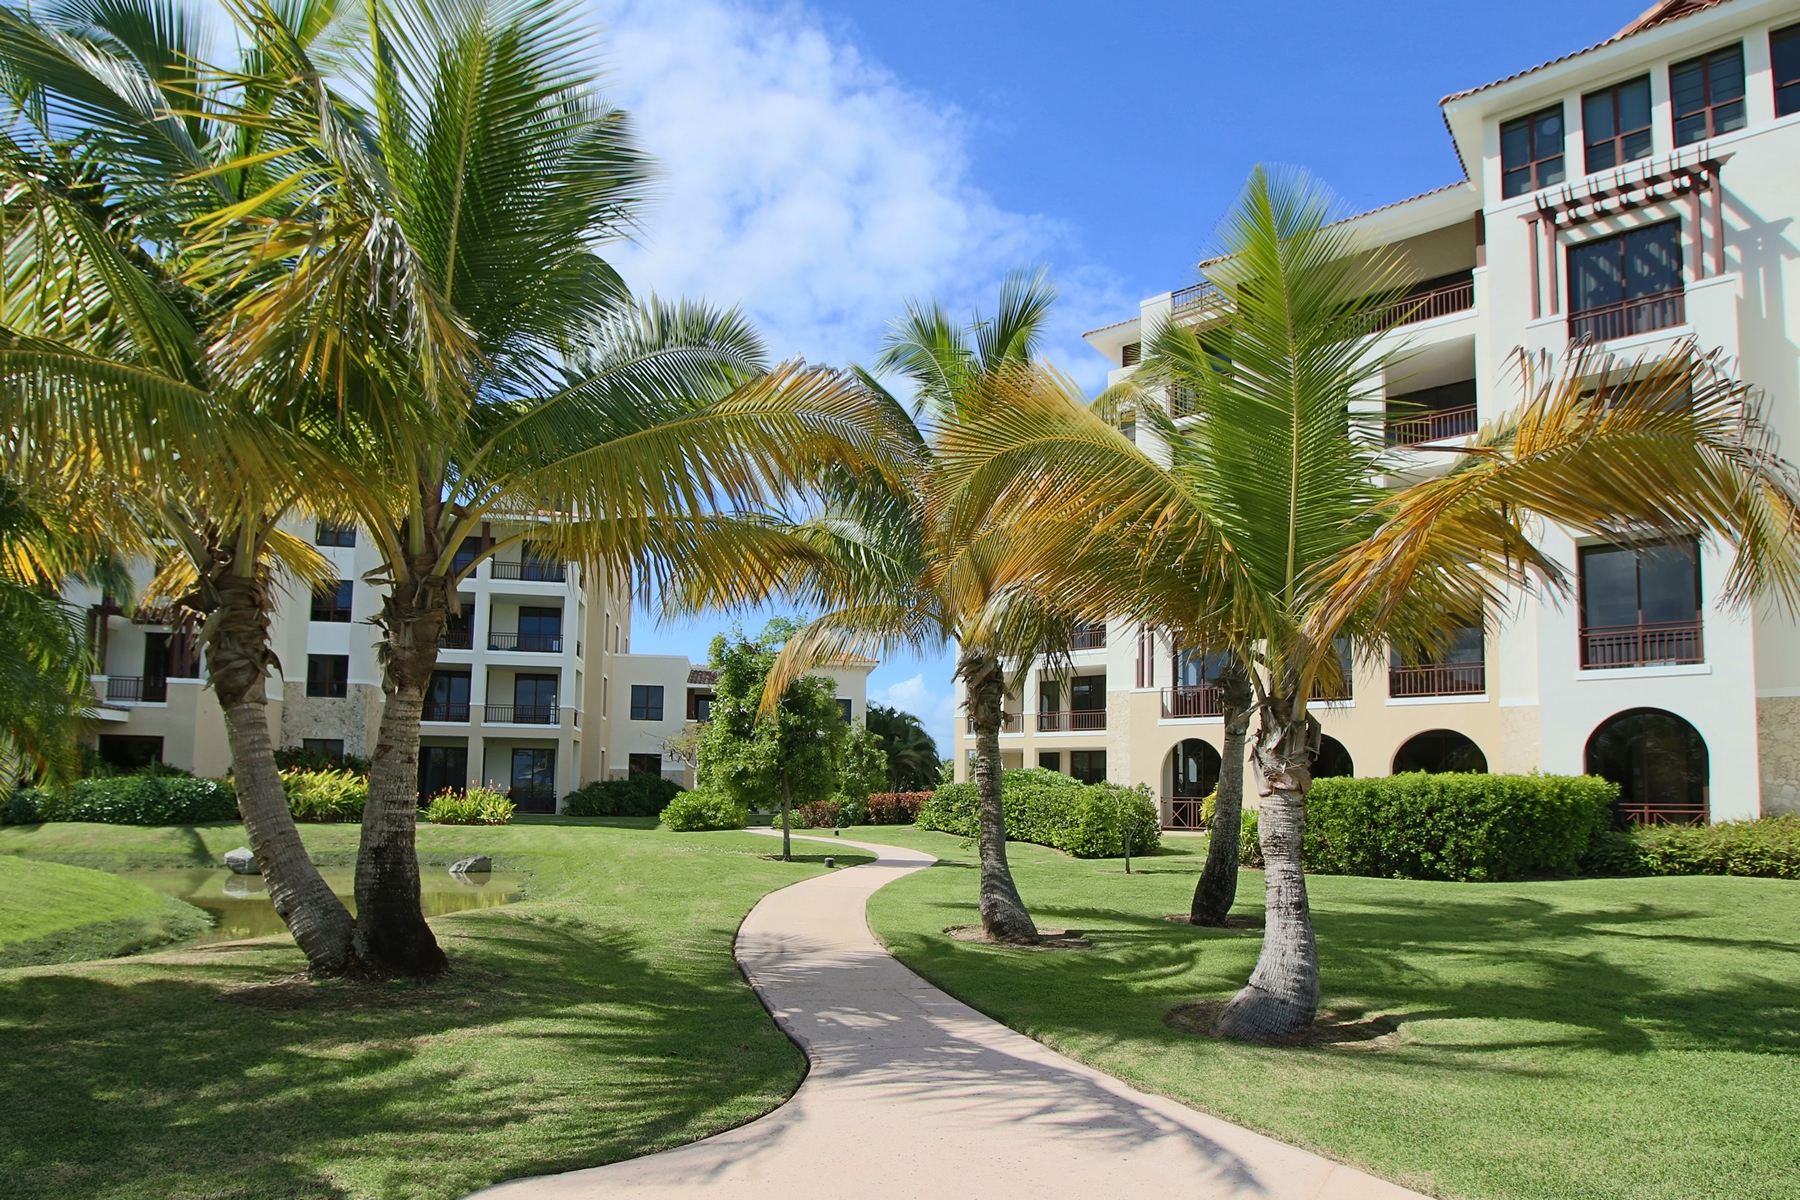 Additional photo for property listing at Residence 221 at 238 Candelero Drive 238 Candelero Drive, Apt 221 Solarea Beach Resort and Yacht Club Palmas Del Mar, Puerto Rico 00791 푸에르토리코